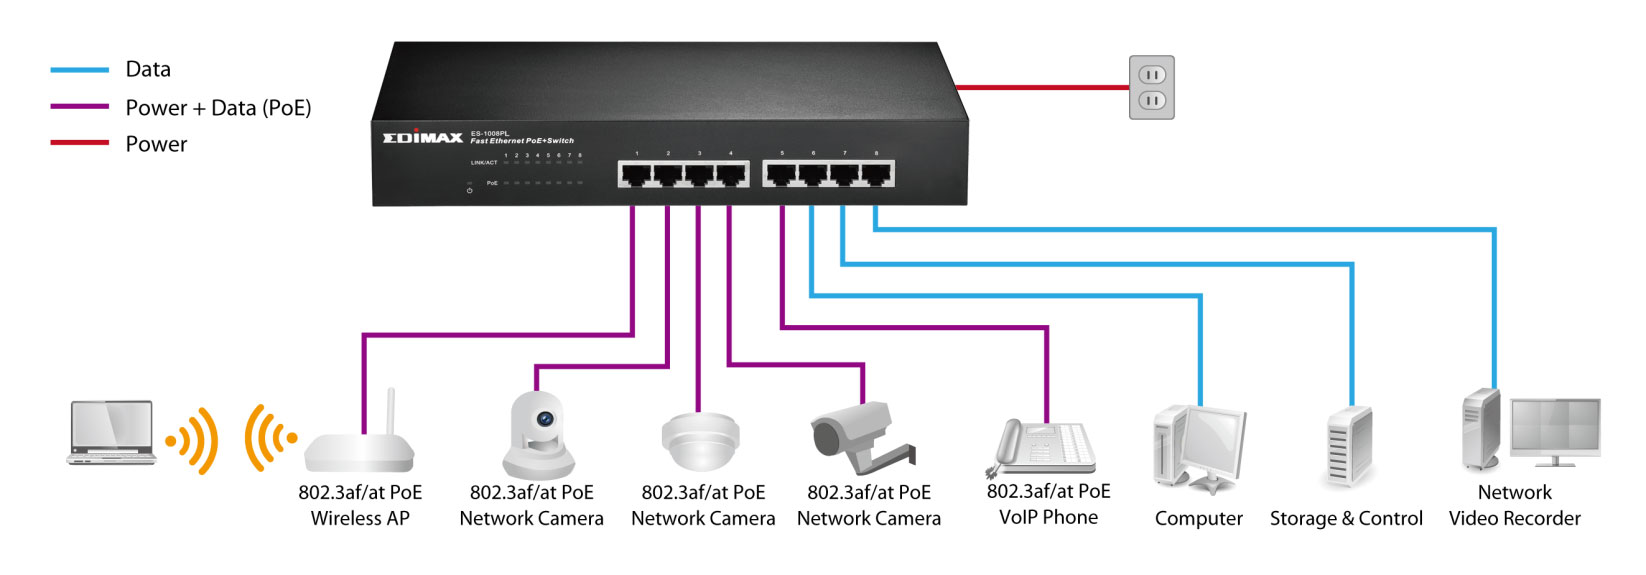 Wiring A Network Switch Books Of Diagram Power Point Typical Ethernet Wireless Access Multiple Switches Install Home